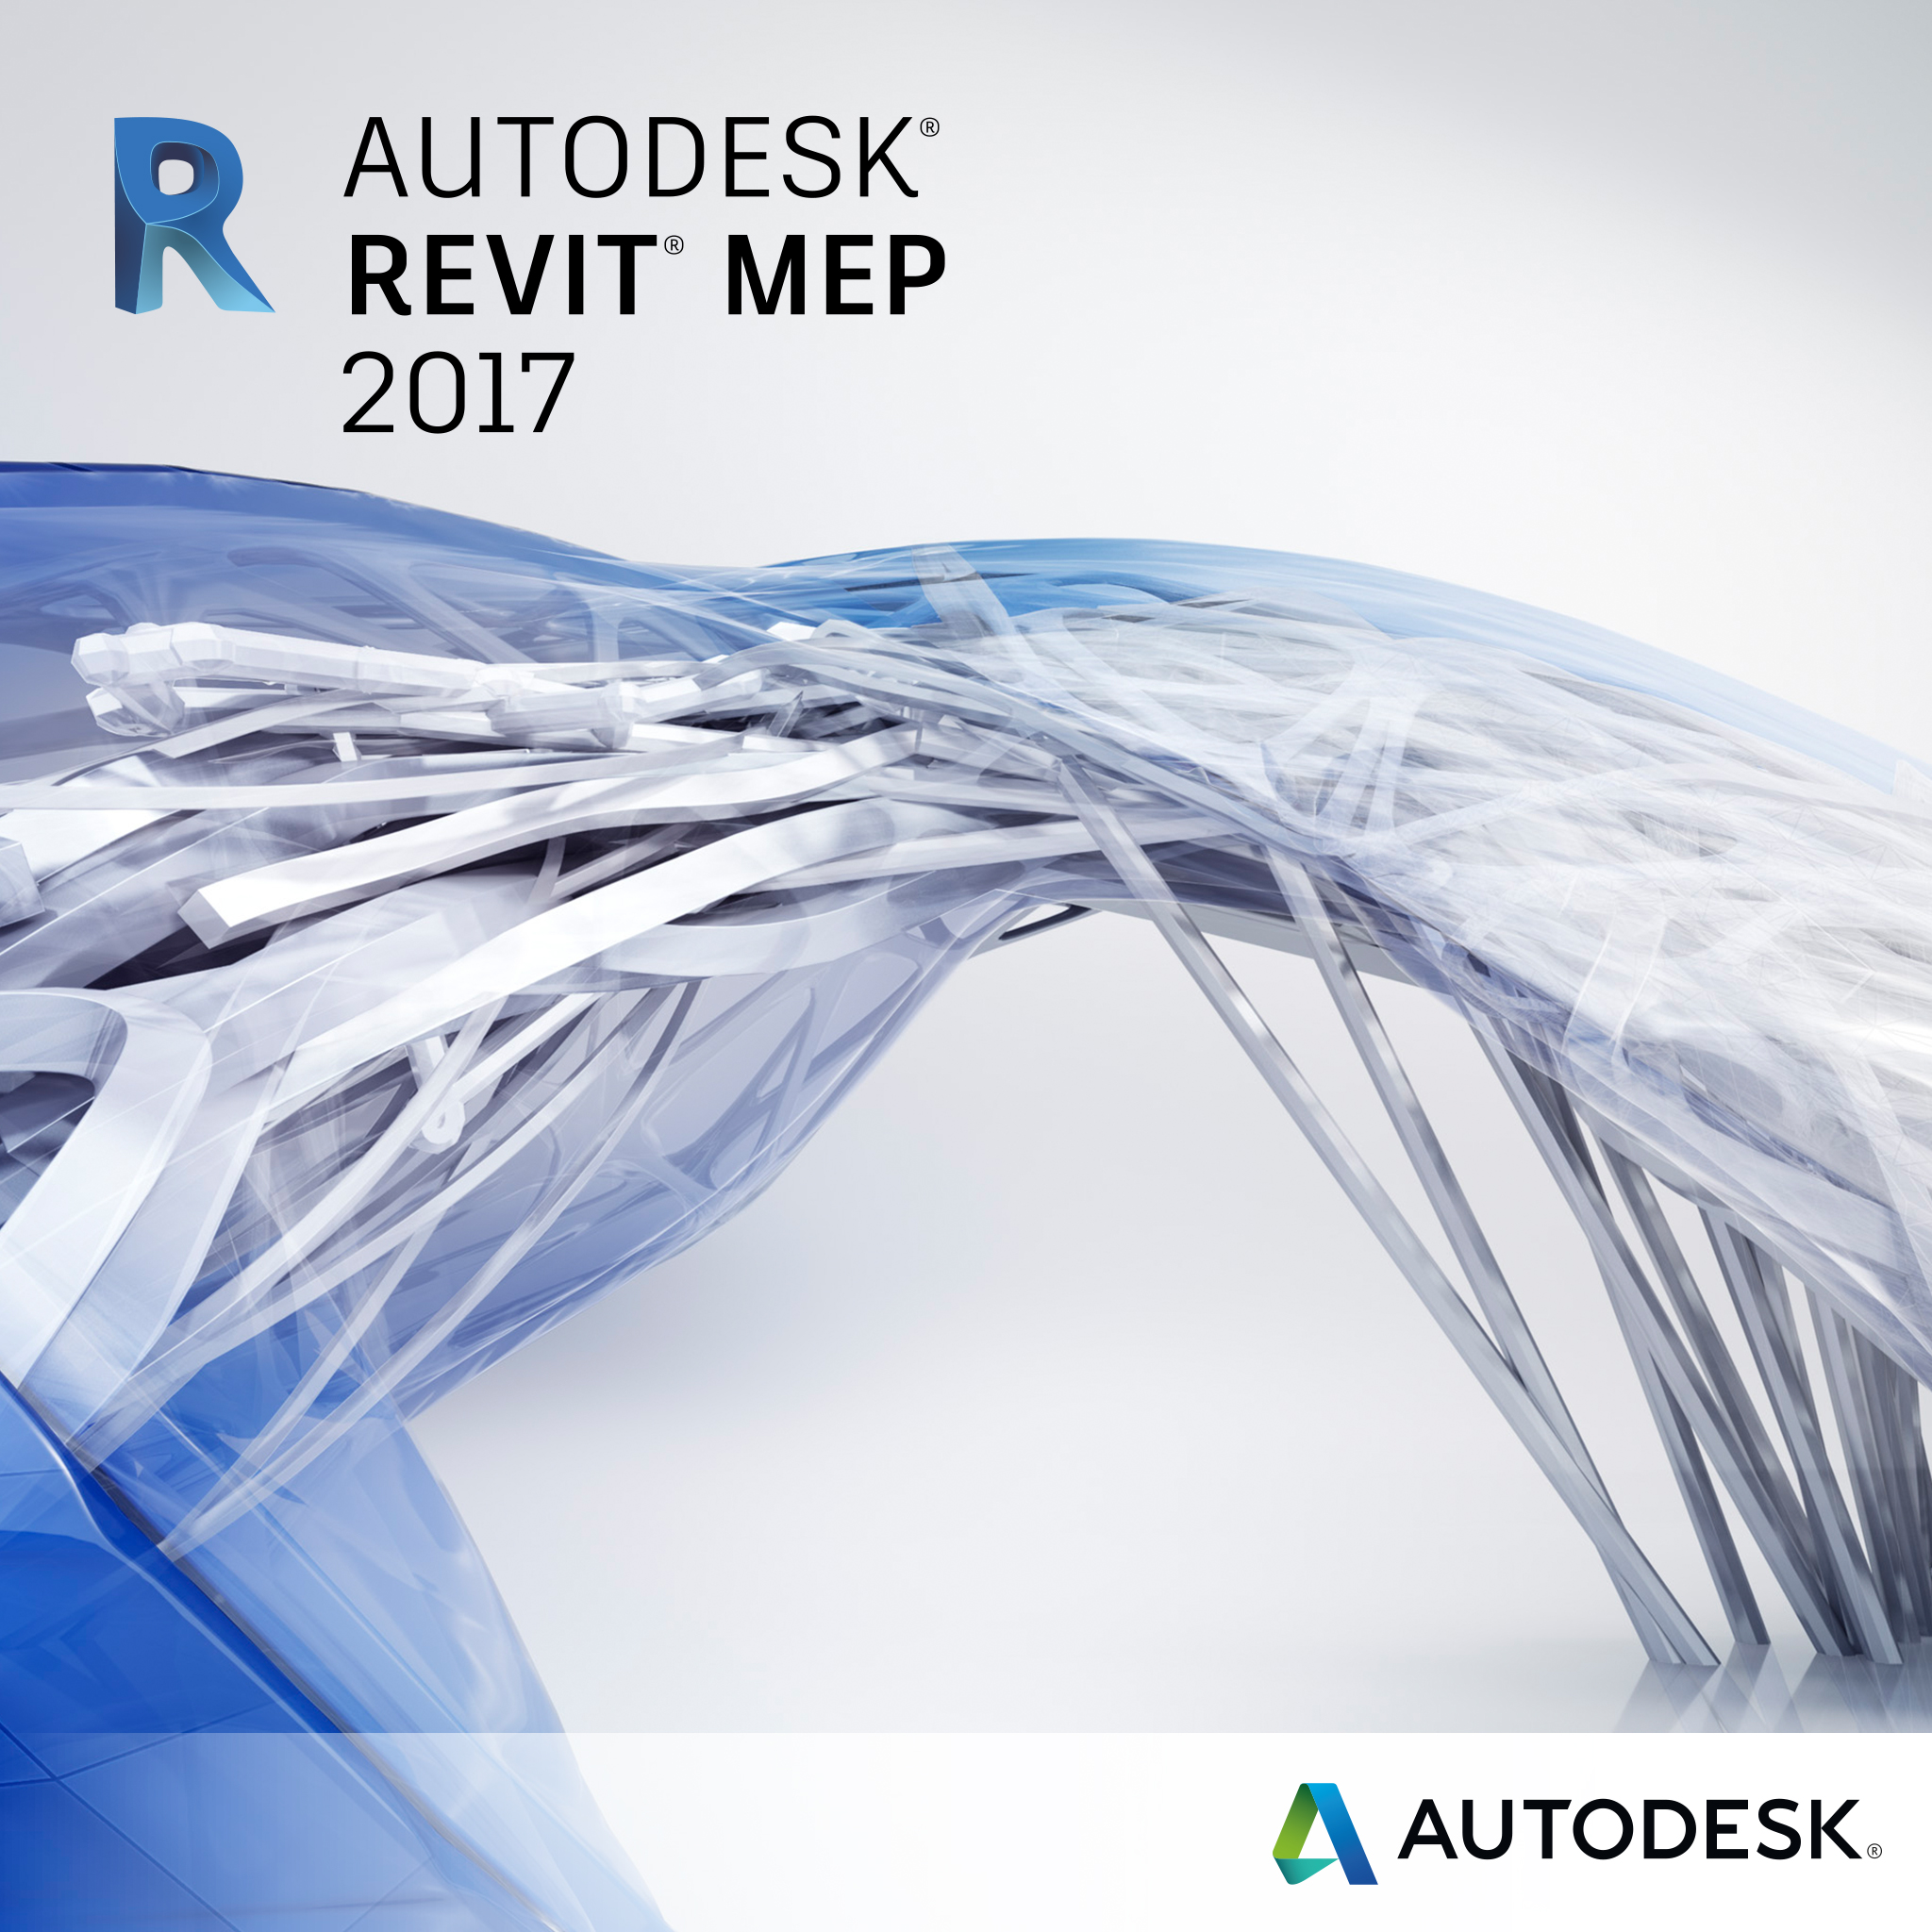 Autodesk revit architecture 2017 srinconfghanen s blog for Architecture 2017